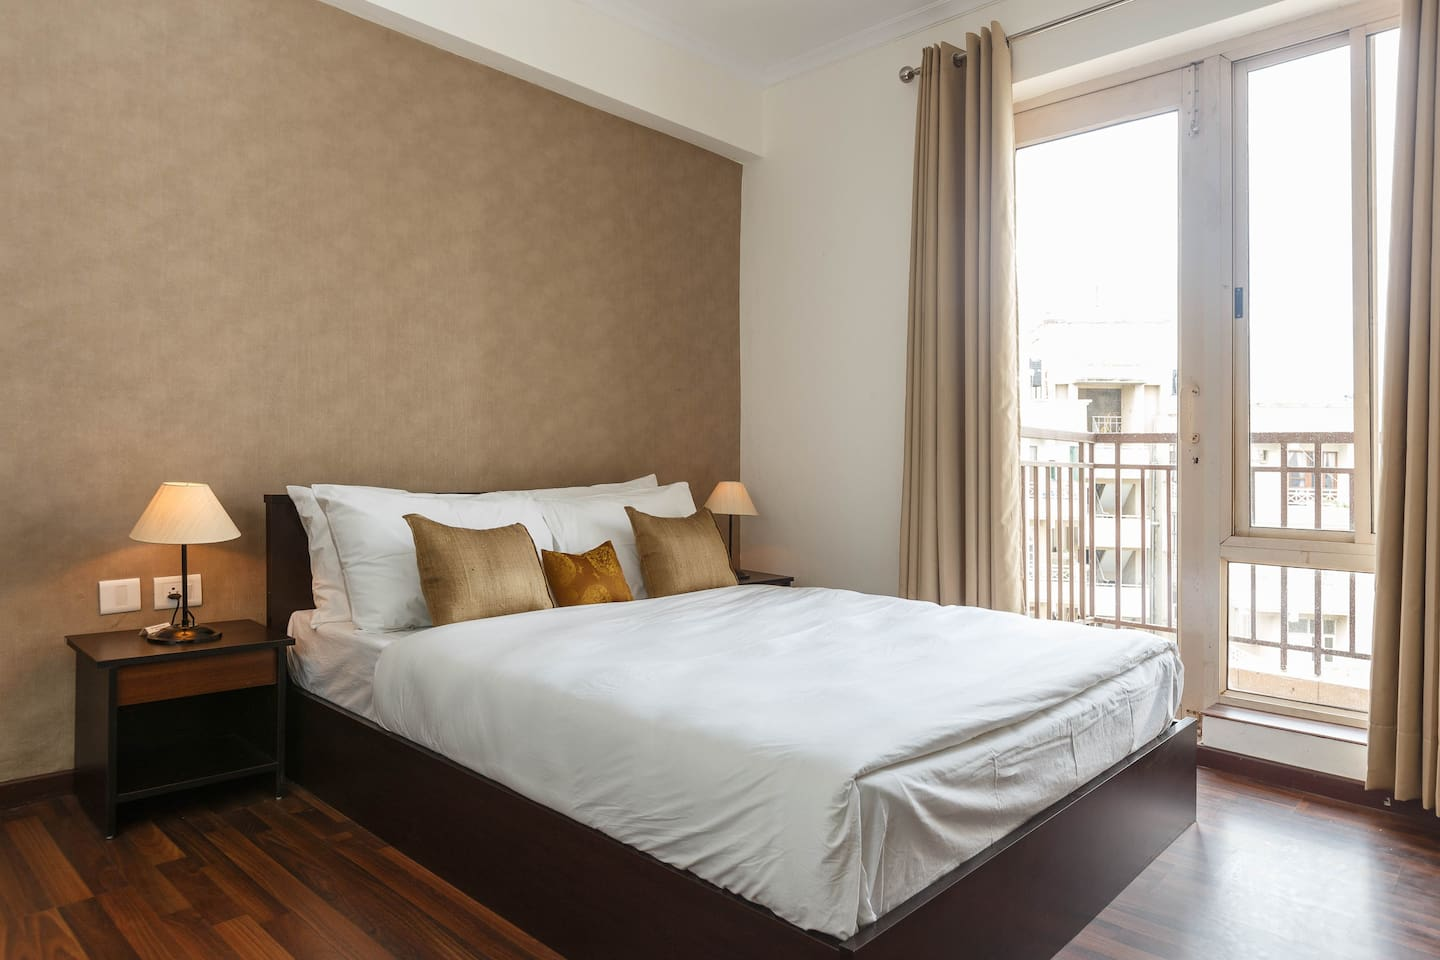 Master Bedroom - Our Master bedroom is elegantly designed to reflect our ethos of luxury living. The room has an air-conditioner and an en-suite bathroom.